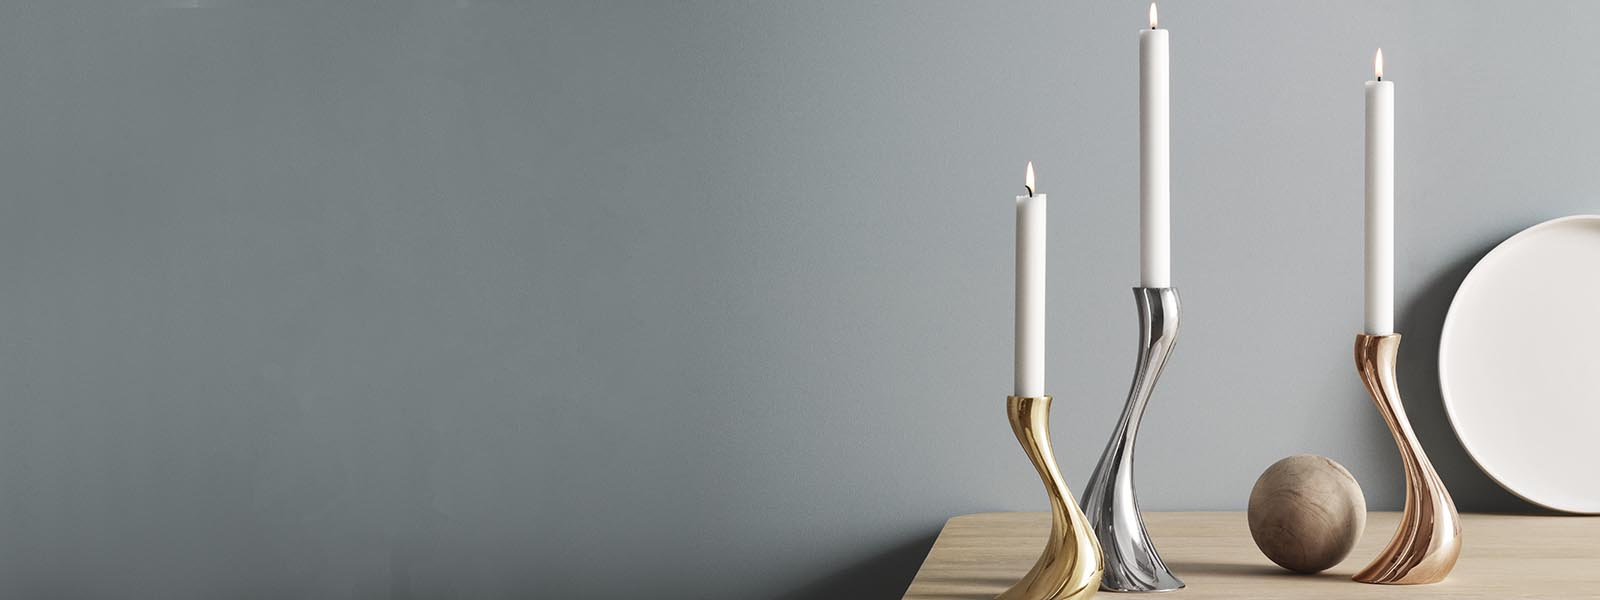 Candleholders in mirror polished stainless steel, plated rose gold and gold from the Cobra collection